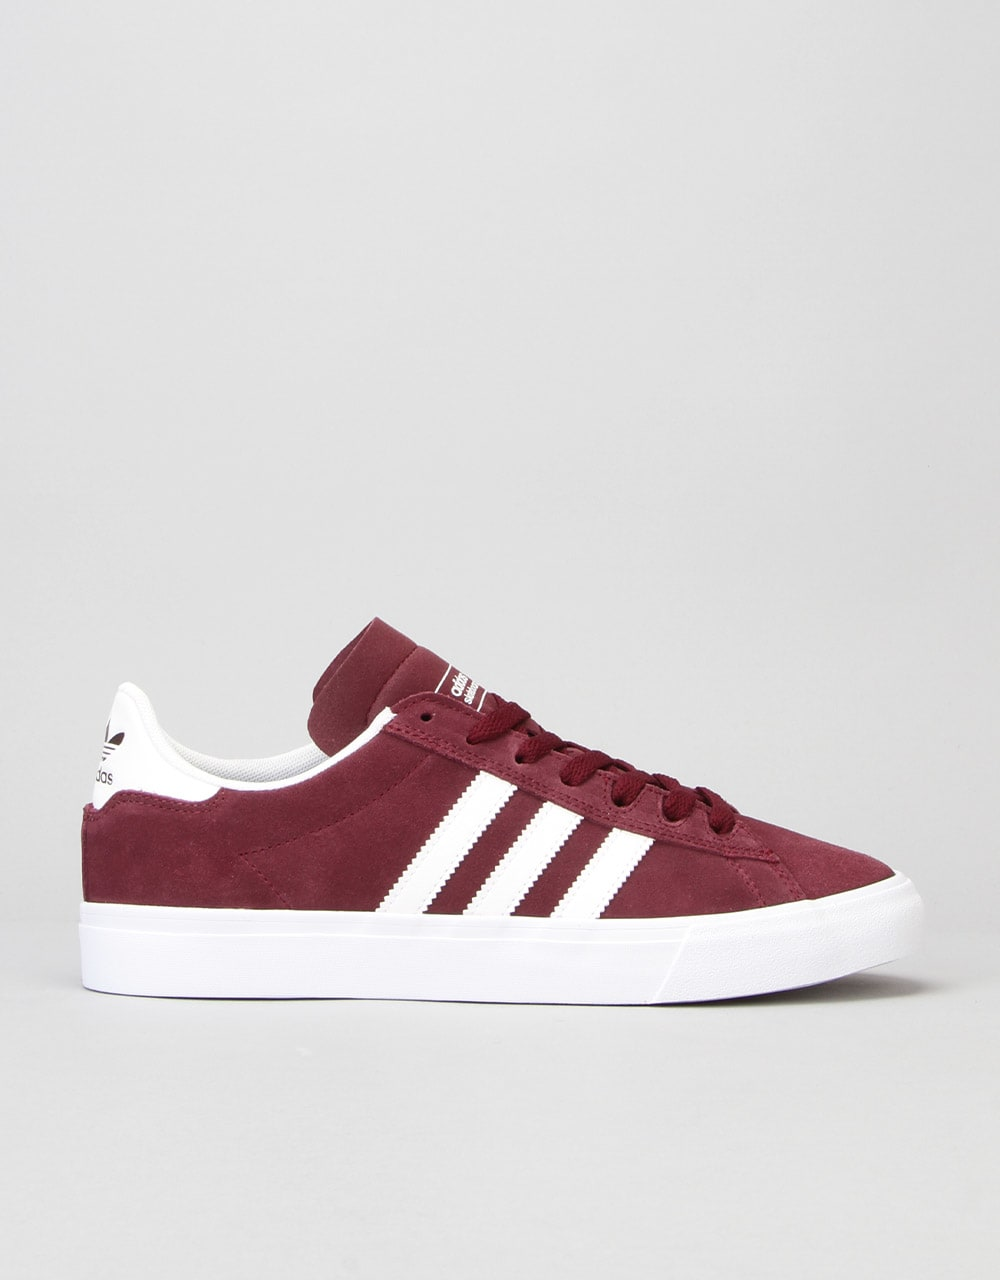 adidas superstar ii leatherman